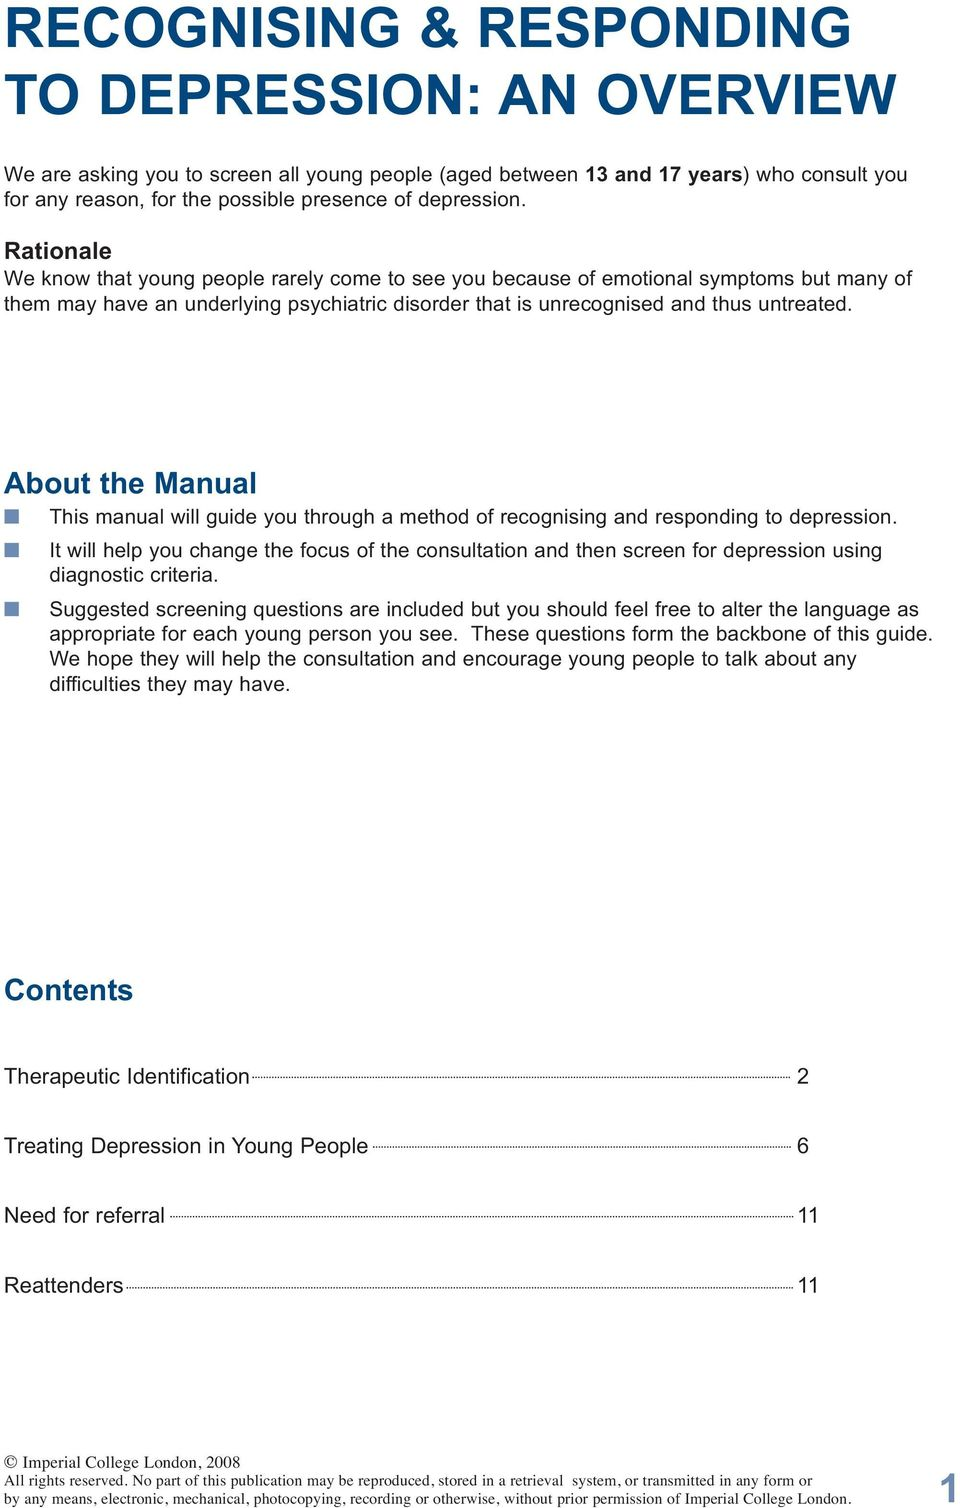 About the Manual This manual will guide you through a method of recognising and responding to depression.